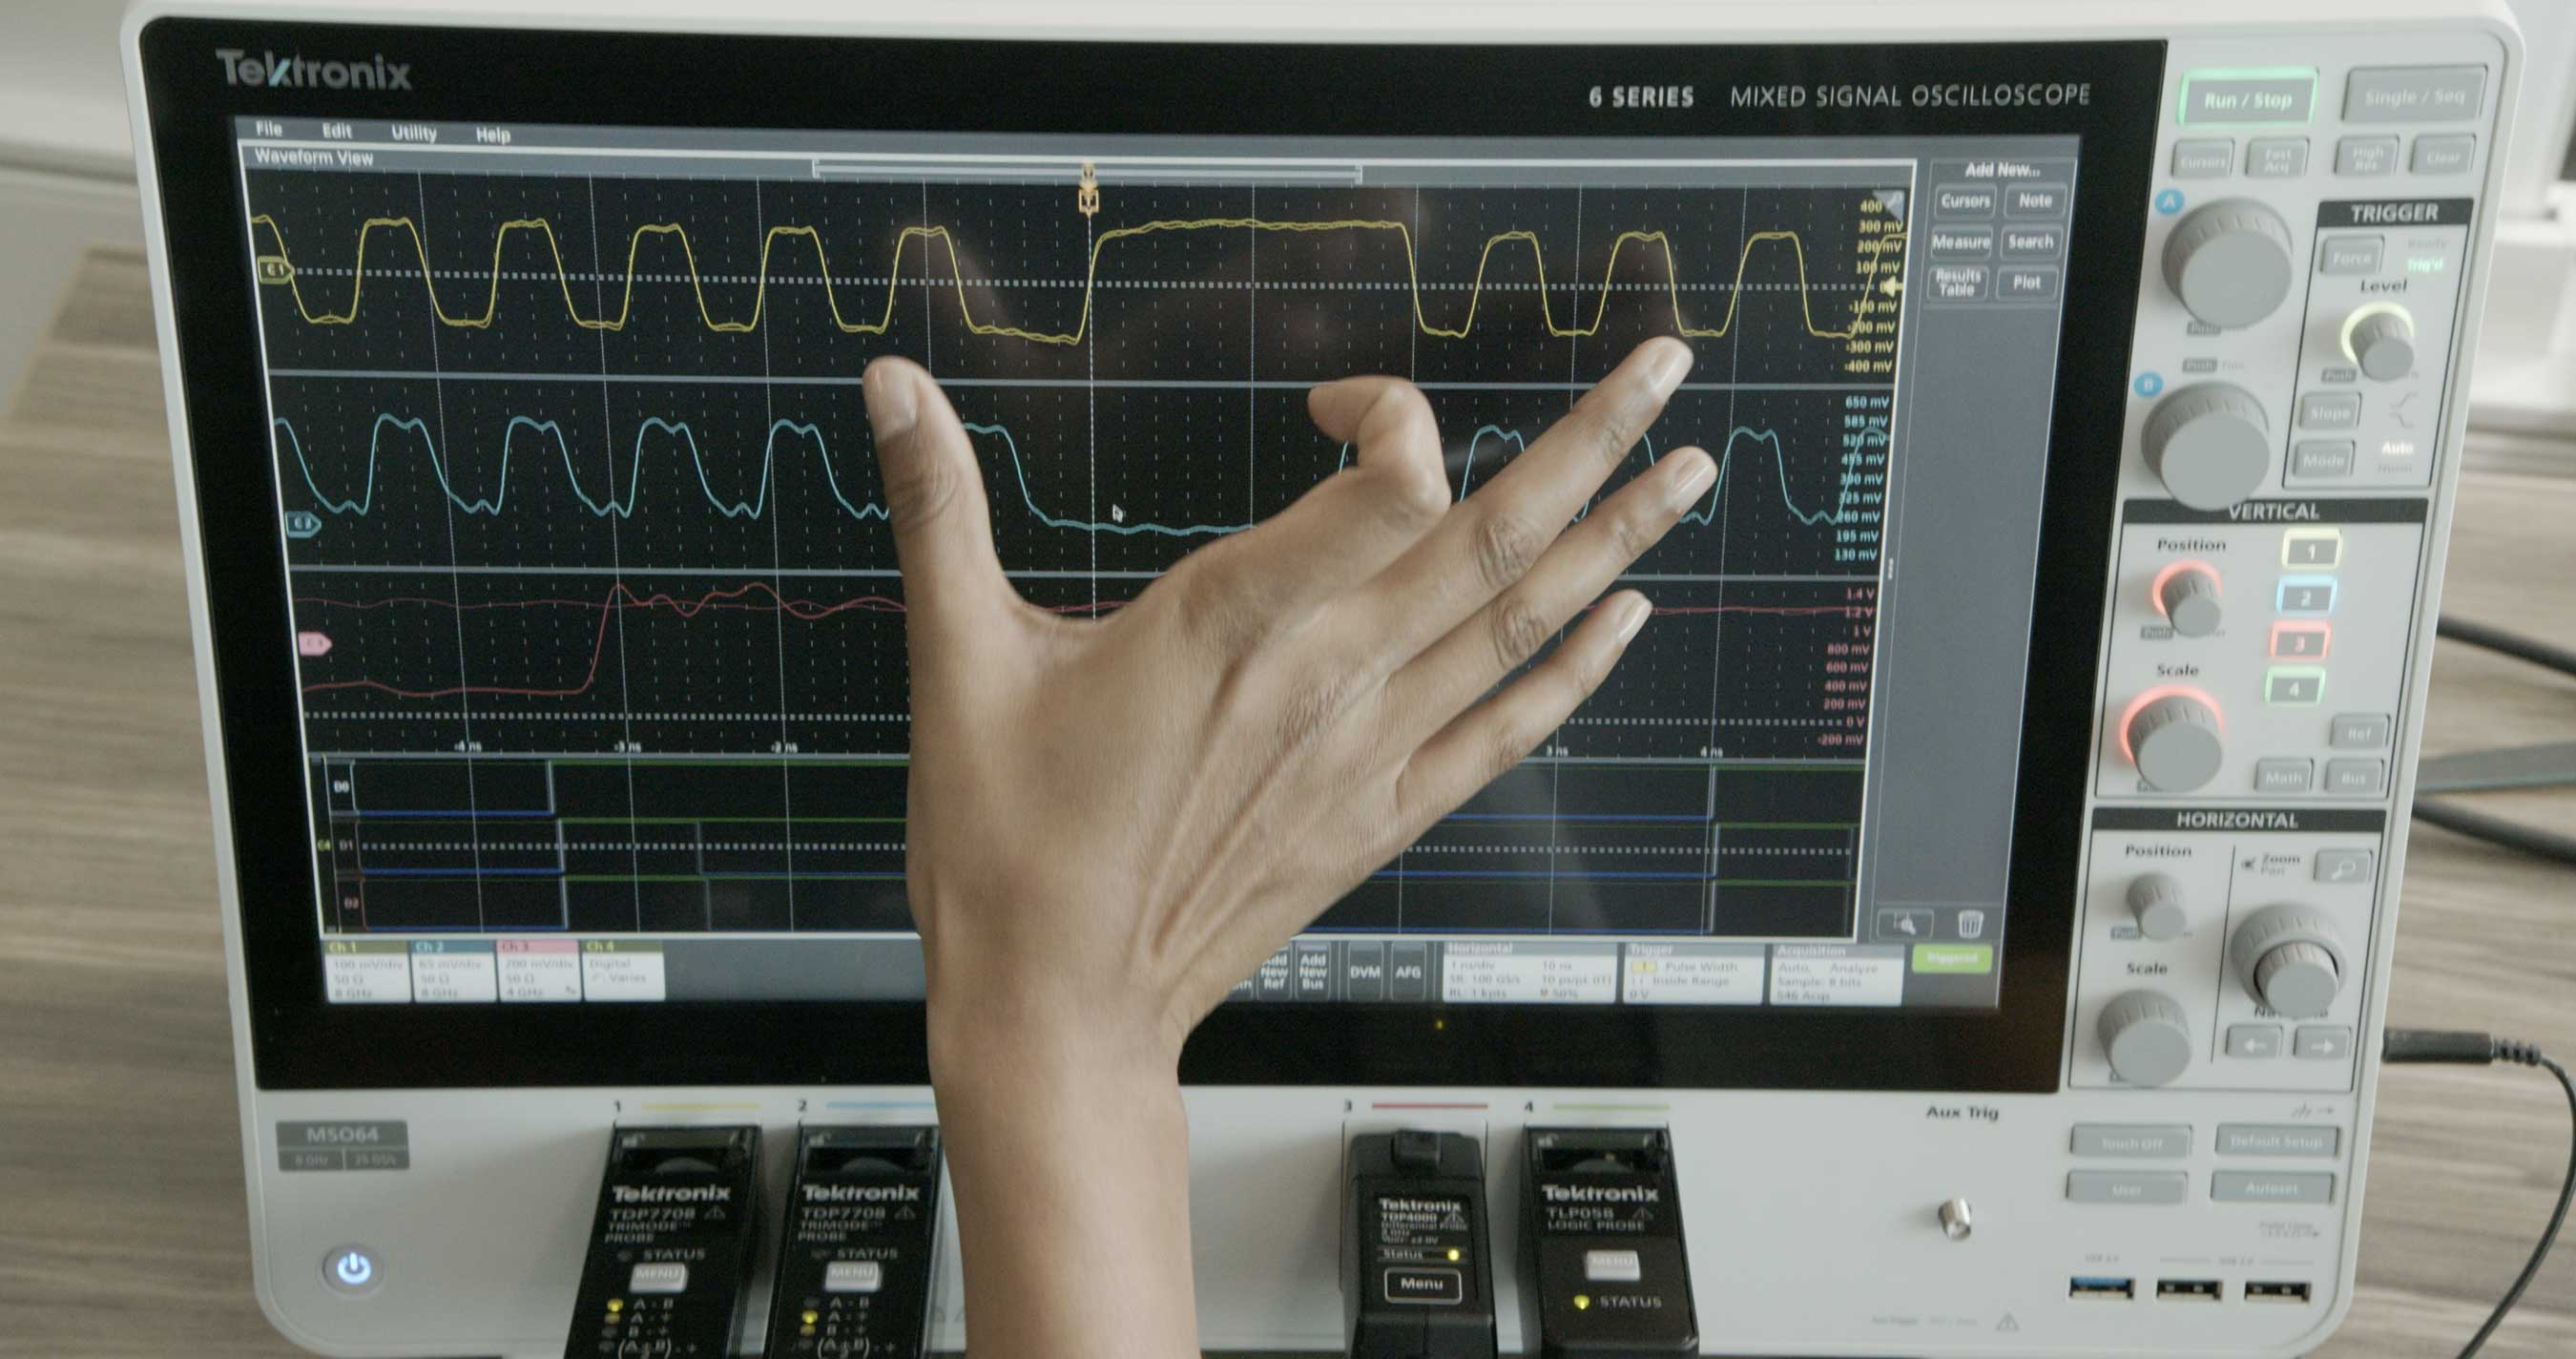 6 Series MSO can cause oscilloscope envy